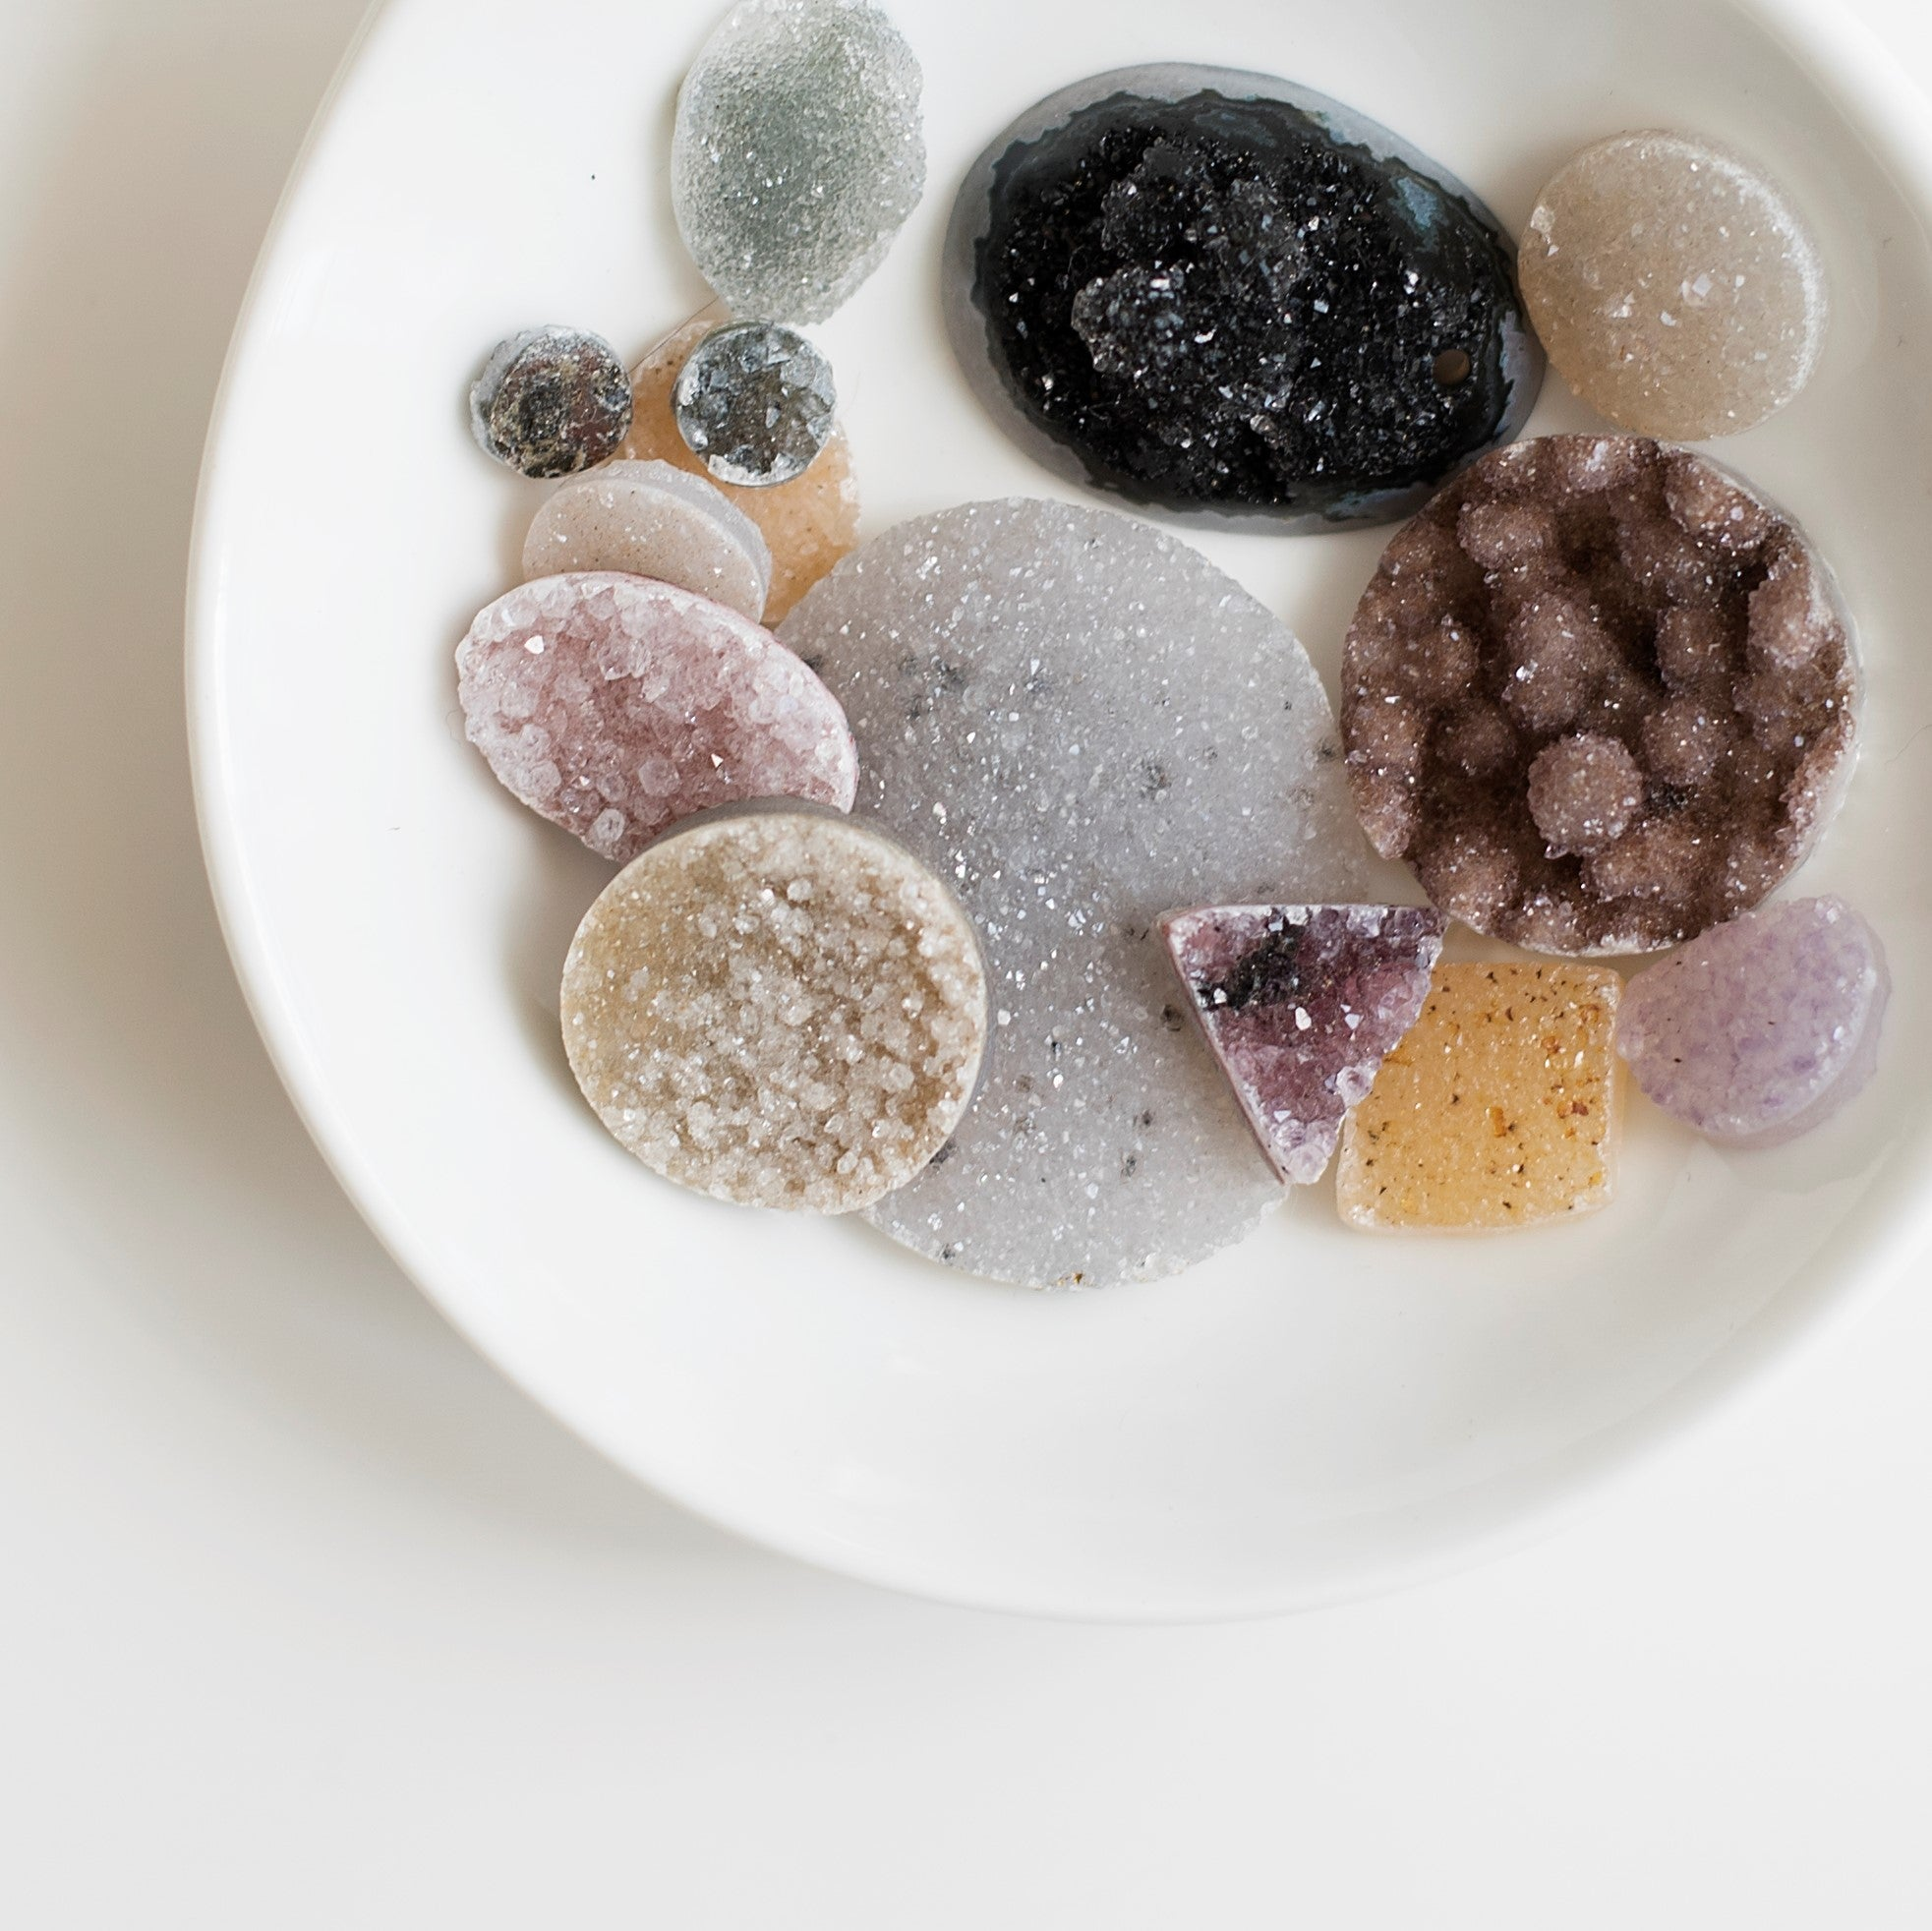 Formed over millennia, the tiny, glittering crystals that make up druzy grow from mineral-rich water trapped in pockets of rock. The resulting plates of druzy occur naturally in an incredible range of colors and sizes, and are often cut for jewelry or har